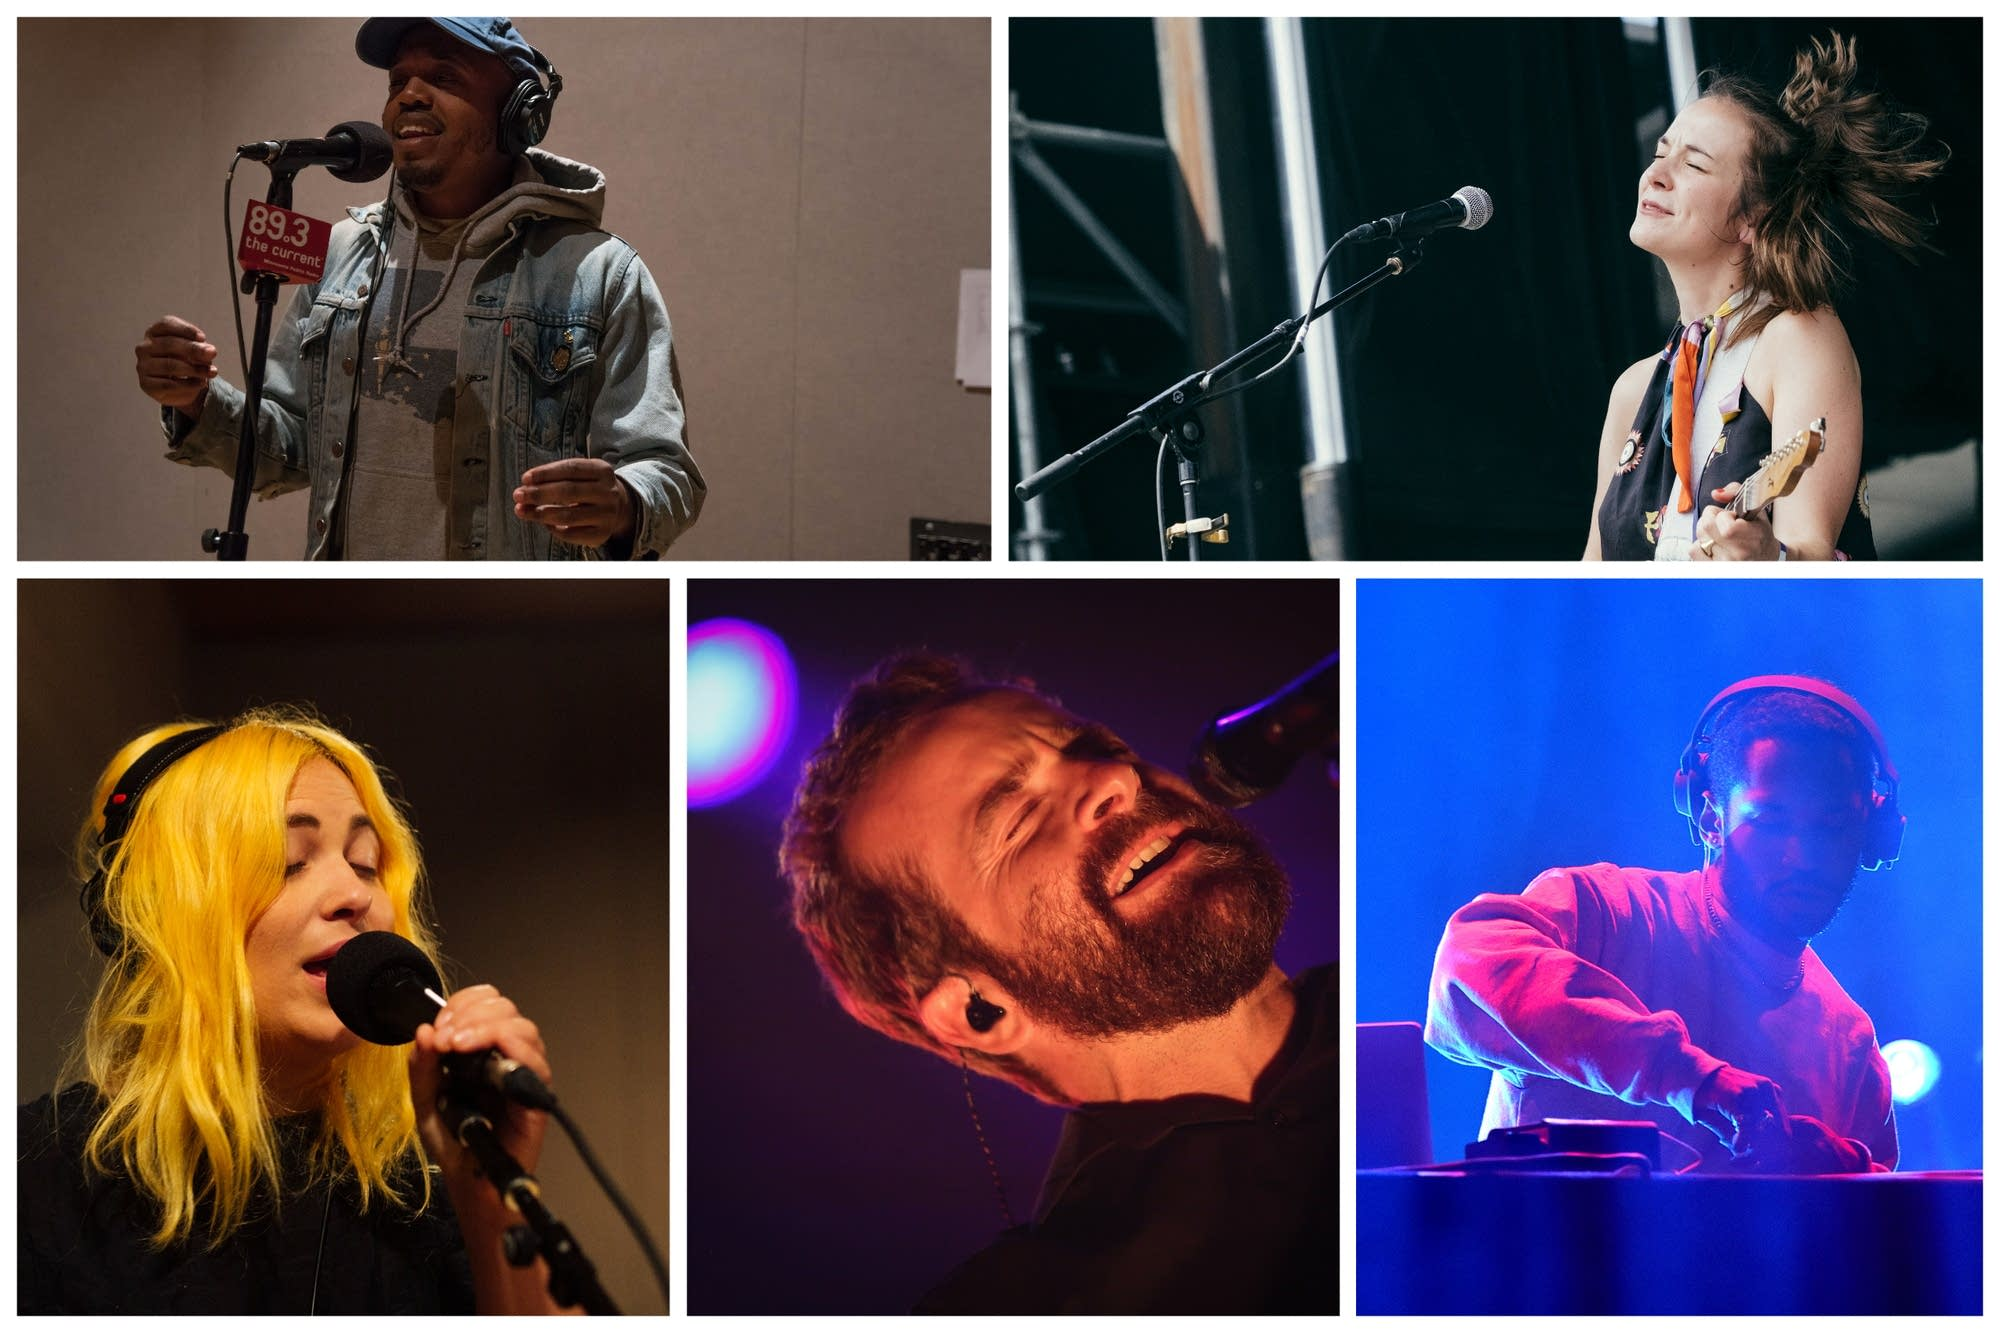 A collage of artists whose new music is being featured on The Current.